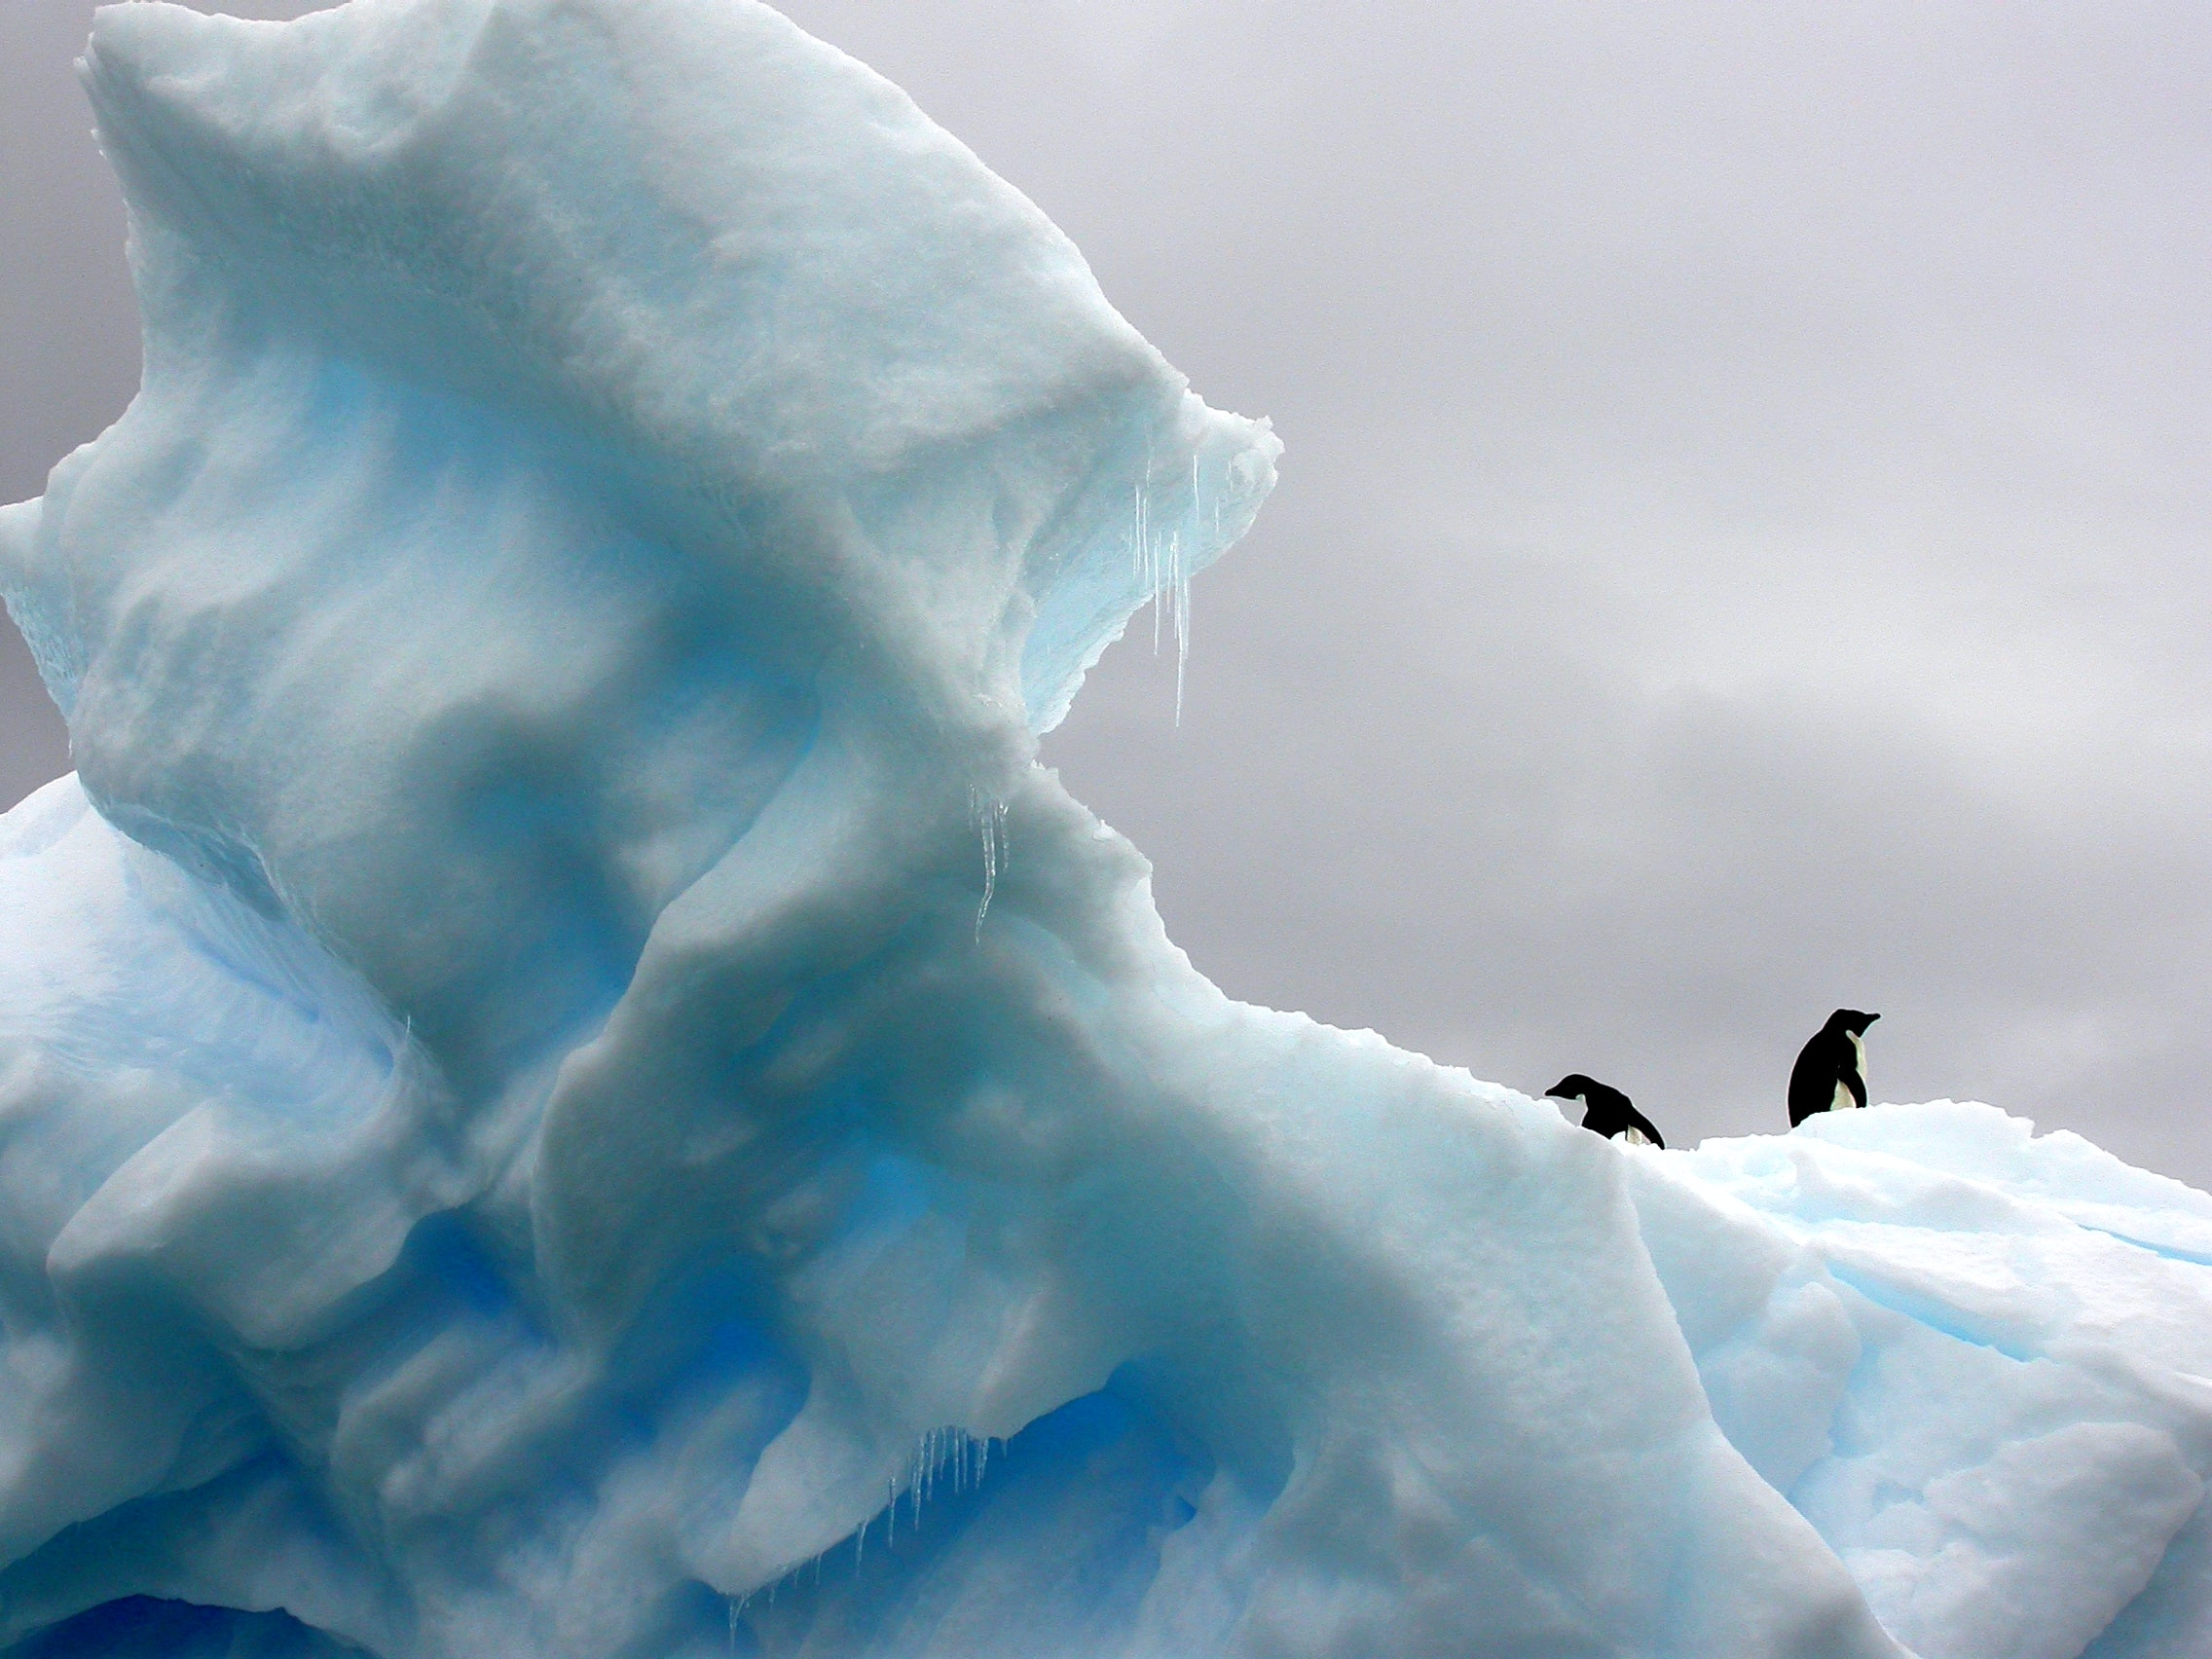 Two penguins walking on an irregularly shaped light blue iceberg